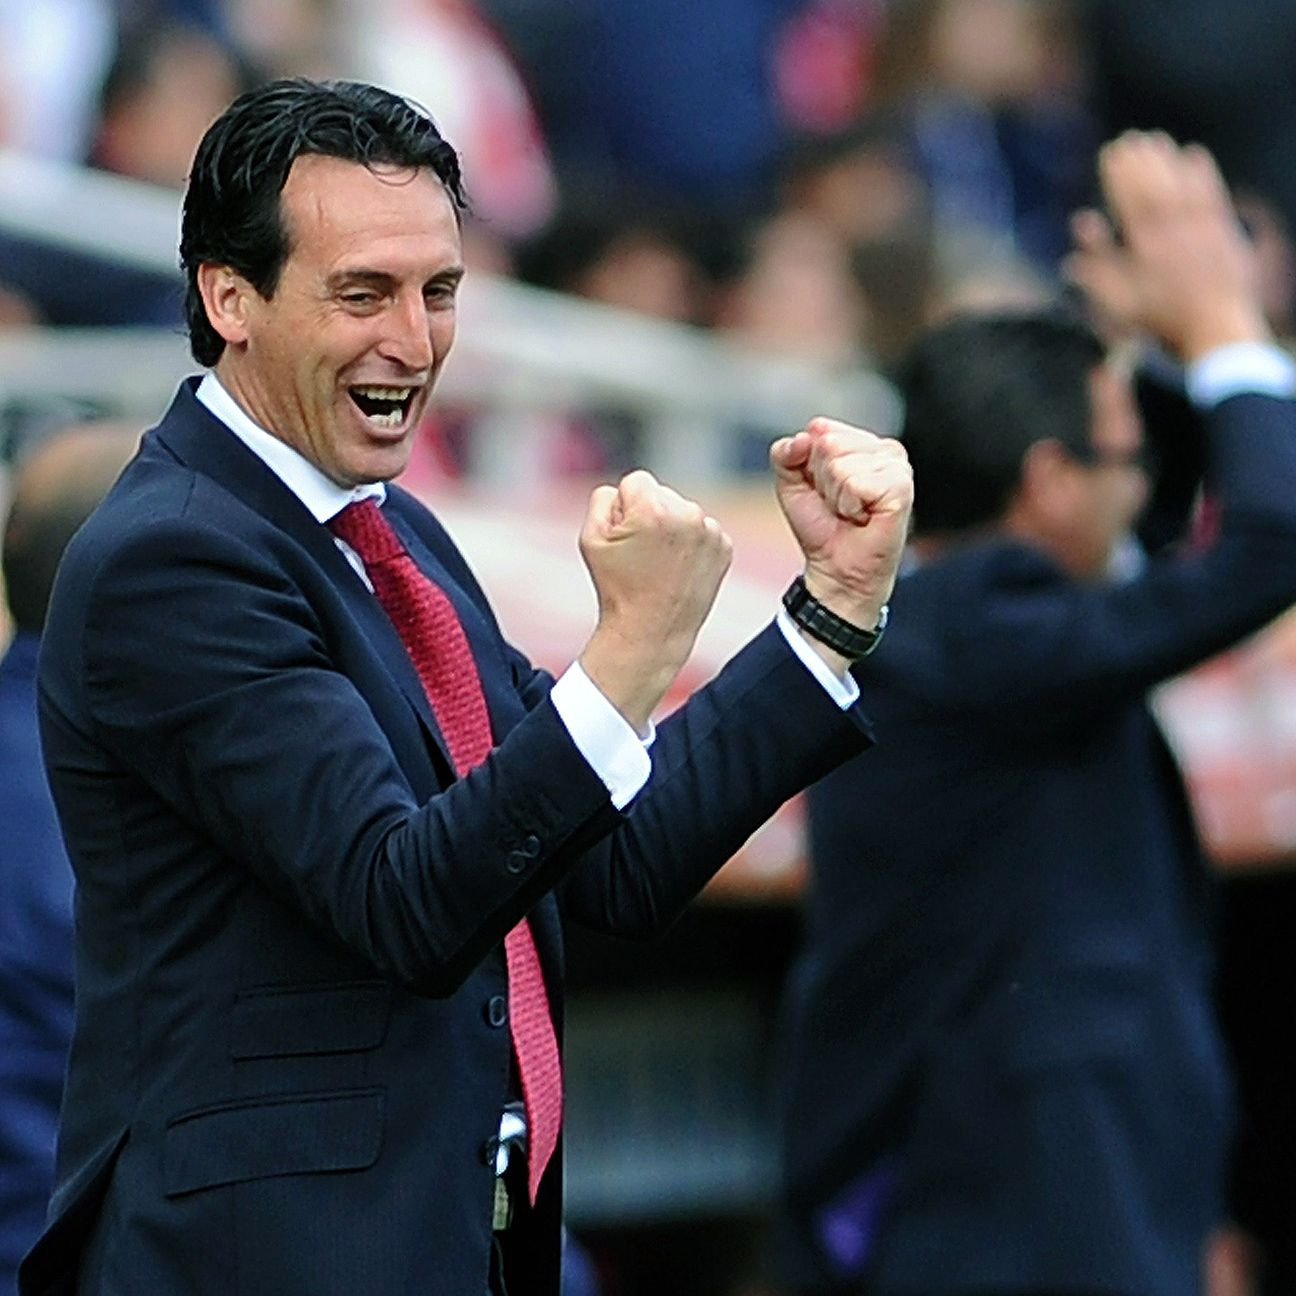 Unai Emery has Sevilla on the verge of winning a second straight Europa League title.